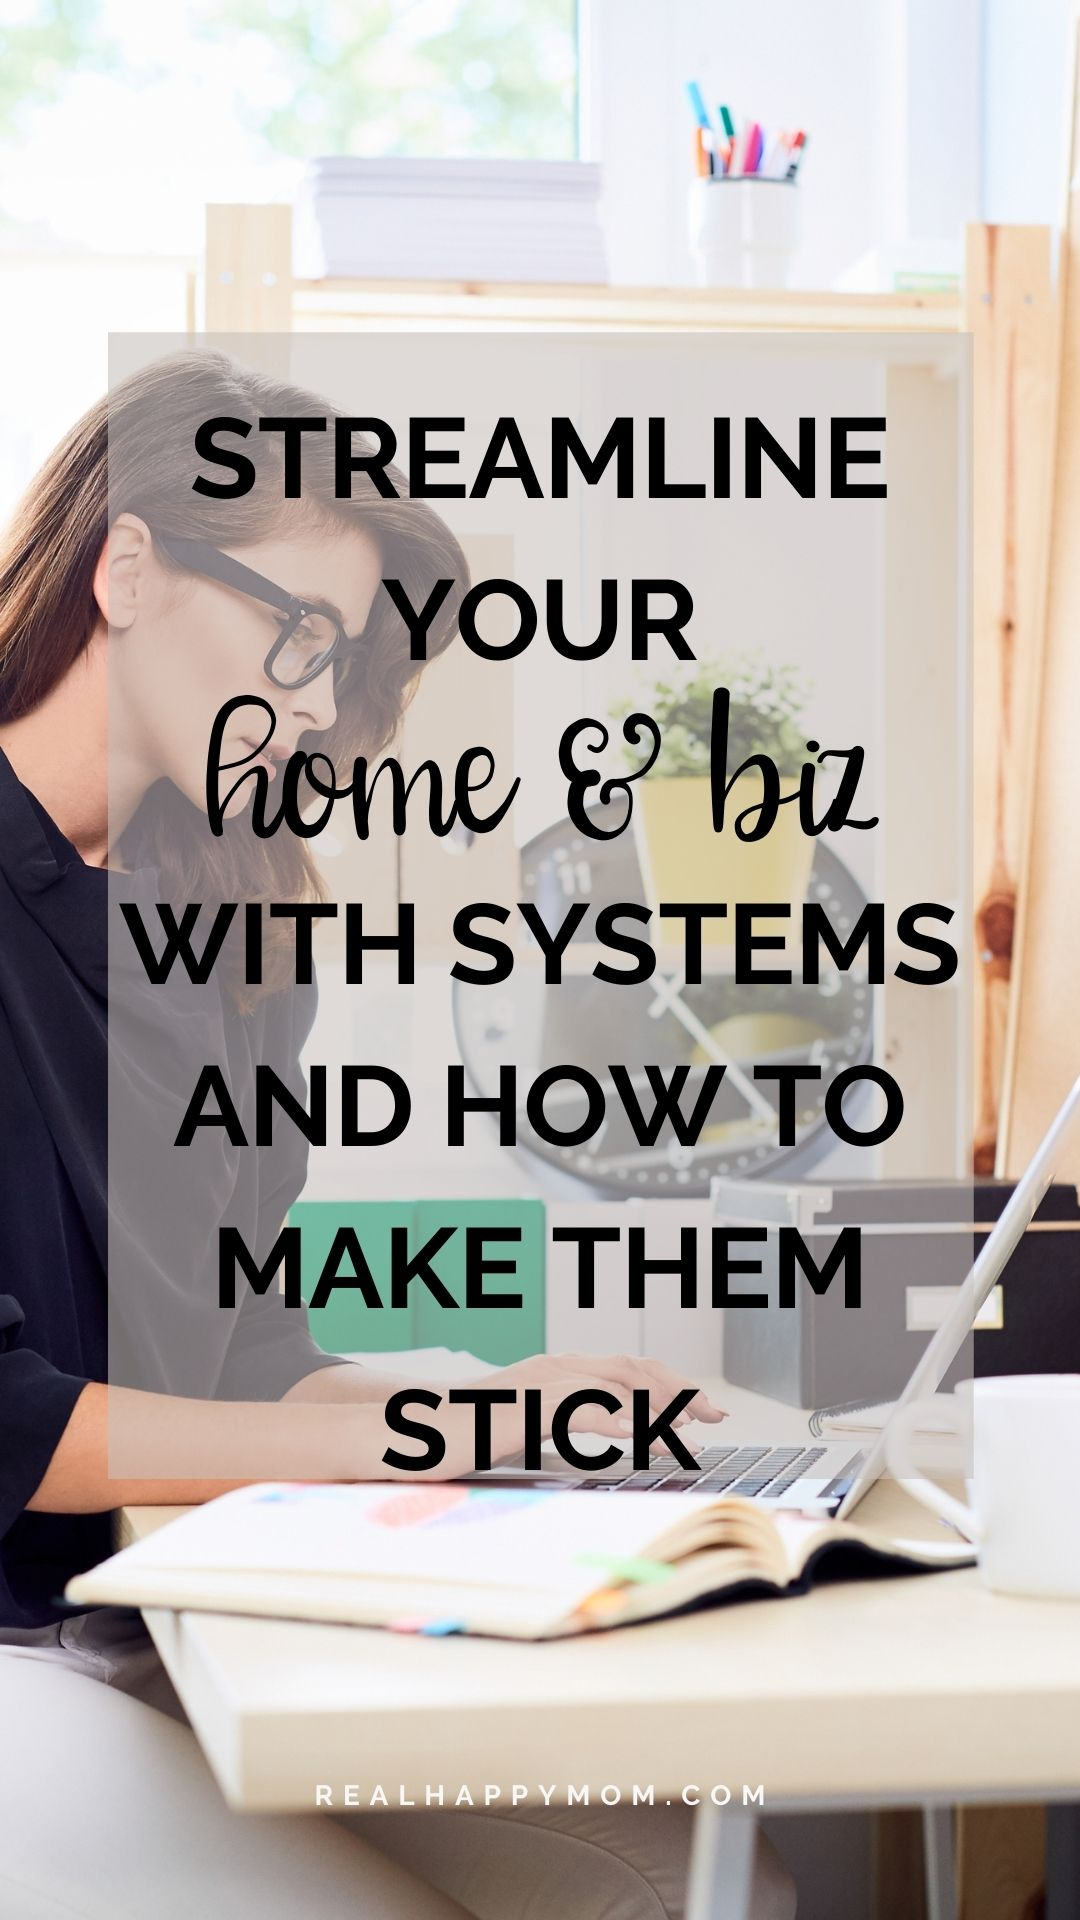 Streamline your Home & Biz with Systems and How to Make Them Stick